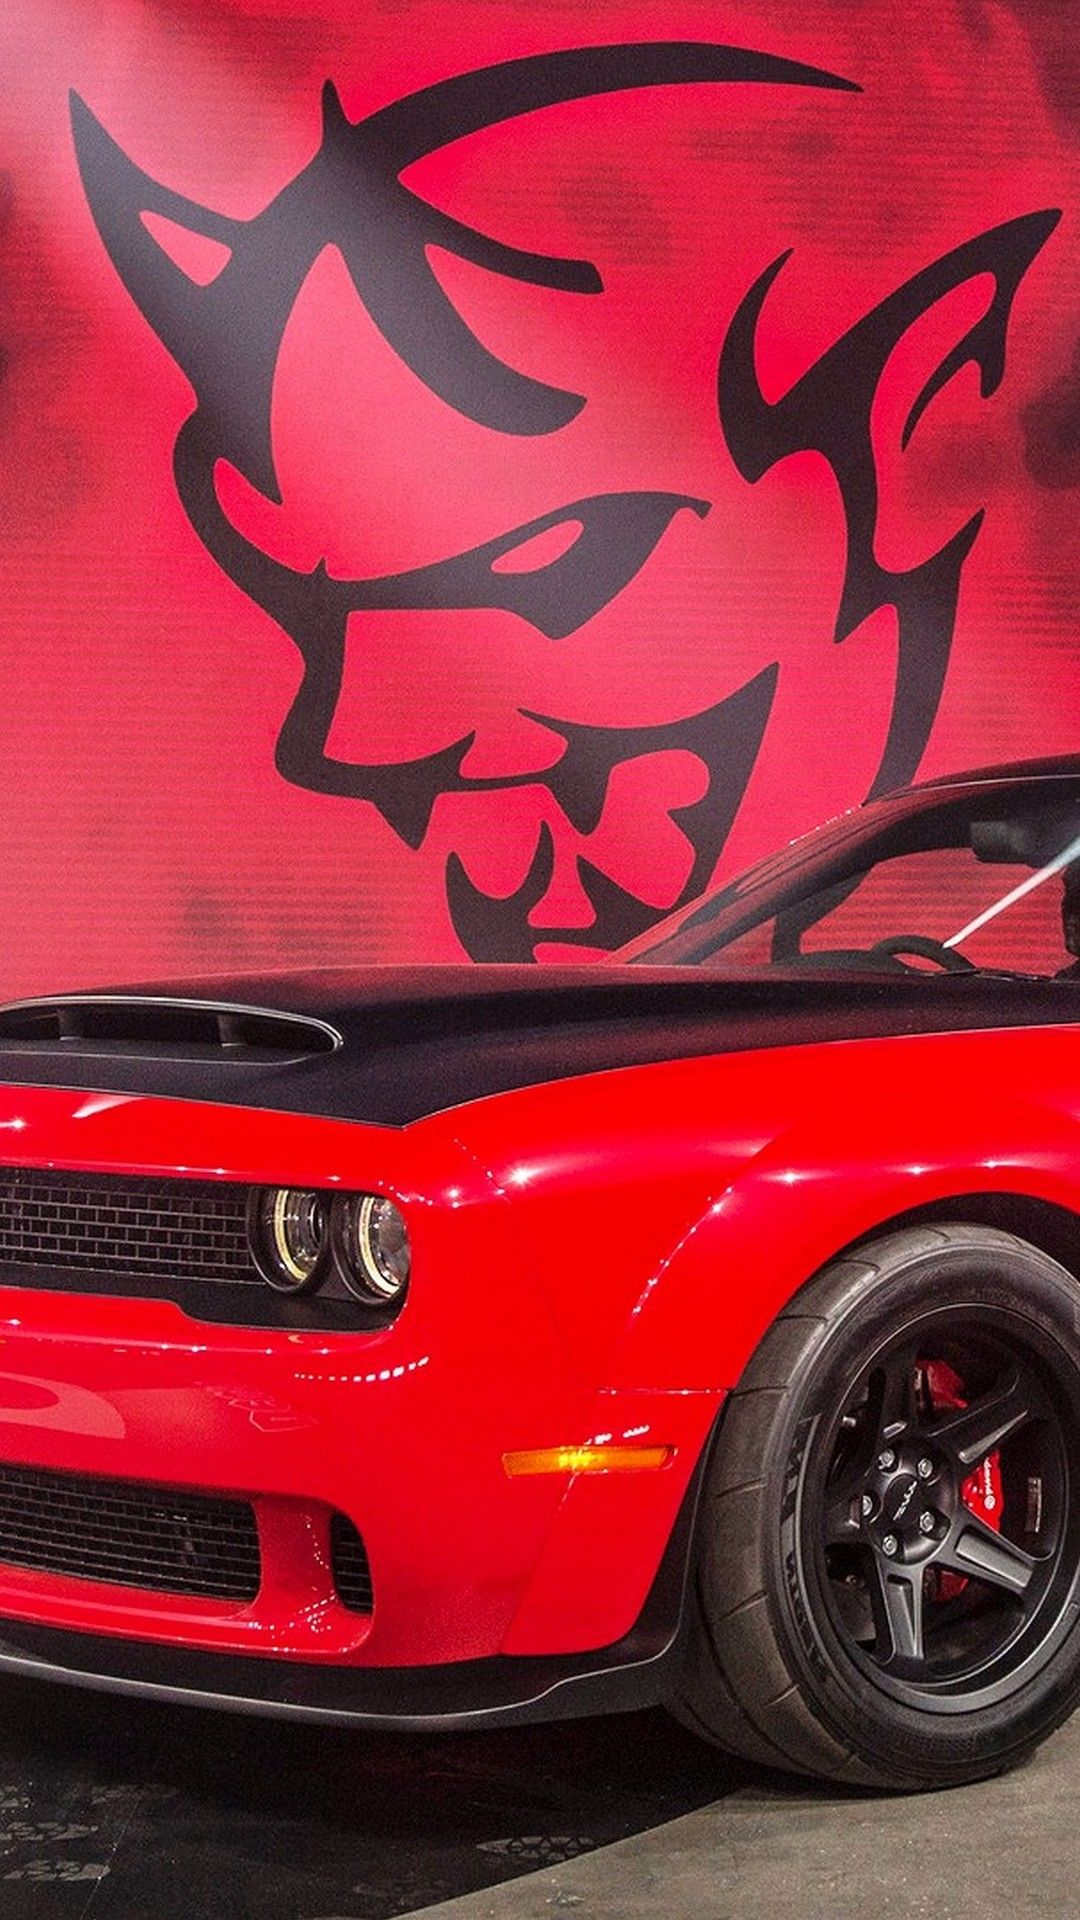 2018 Wallpaper Hd Android Iphone Wallpaper 2018 Dodge Demon